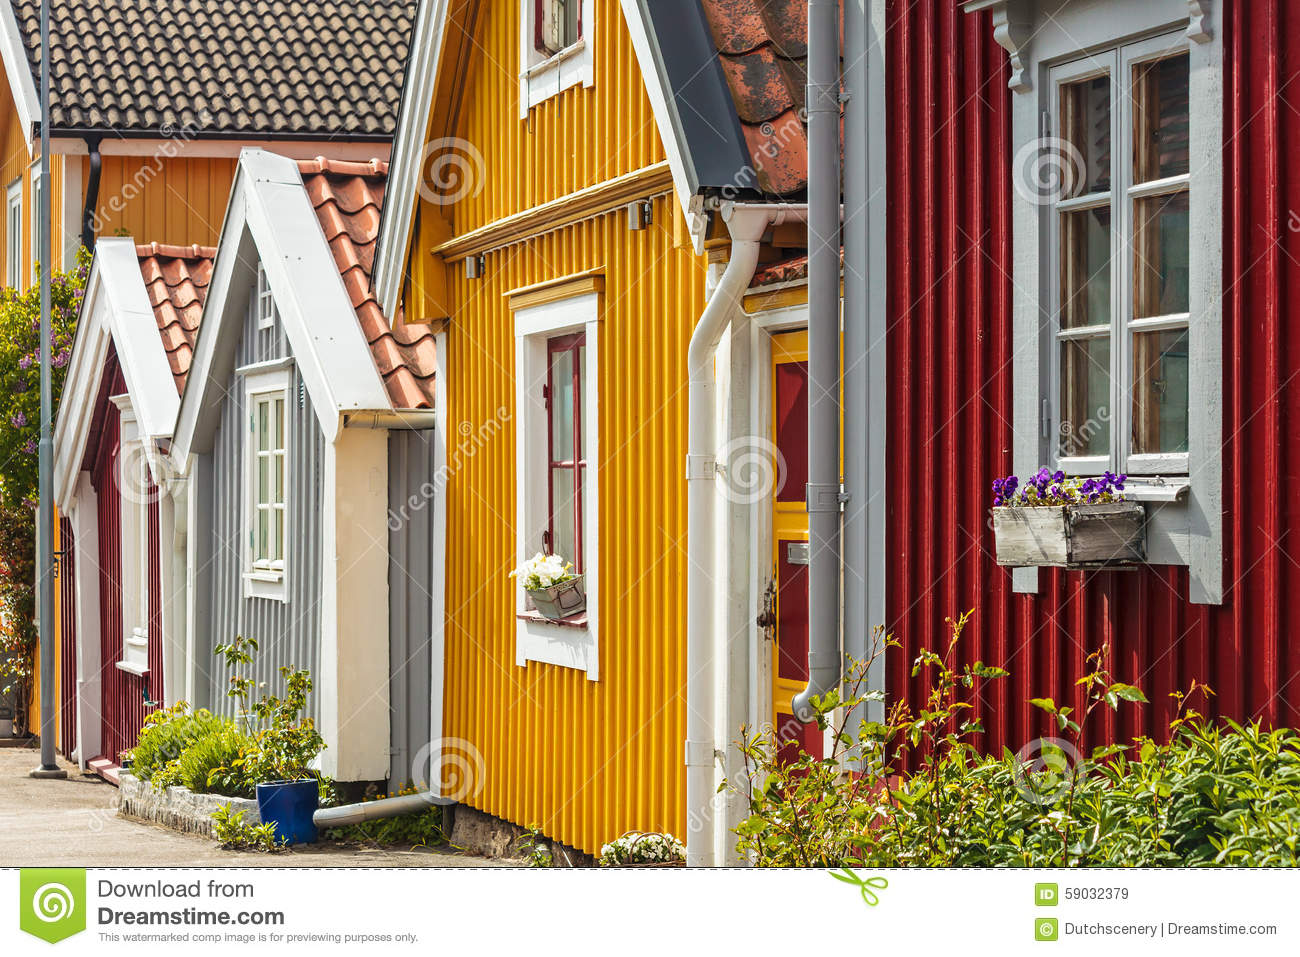 Ancient Colorful Wooden Houses In The City Of Karlskrona Sweden